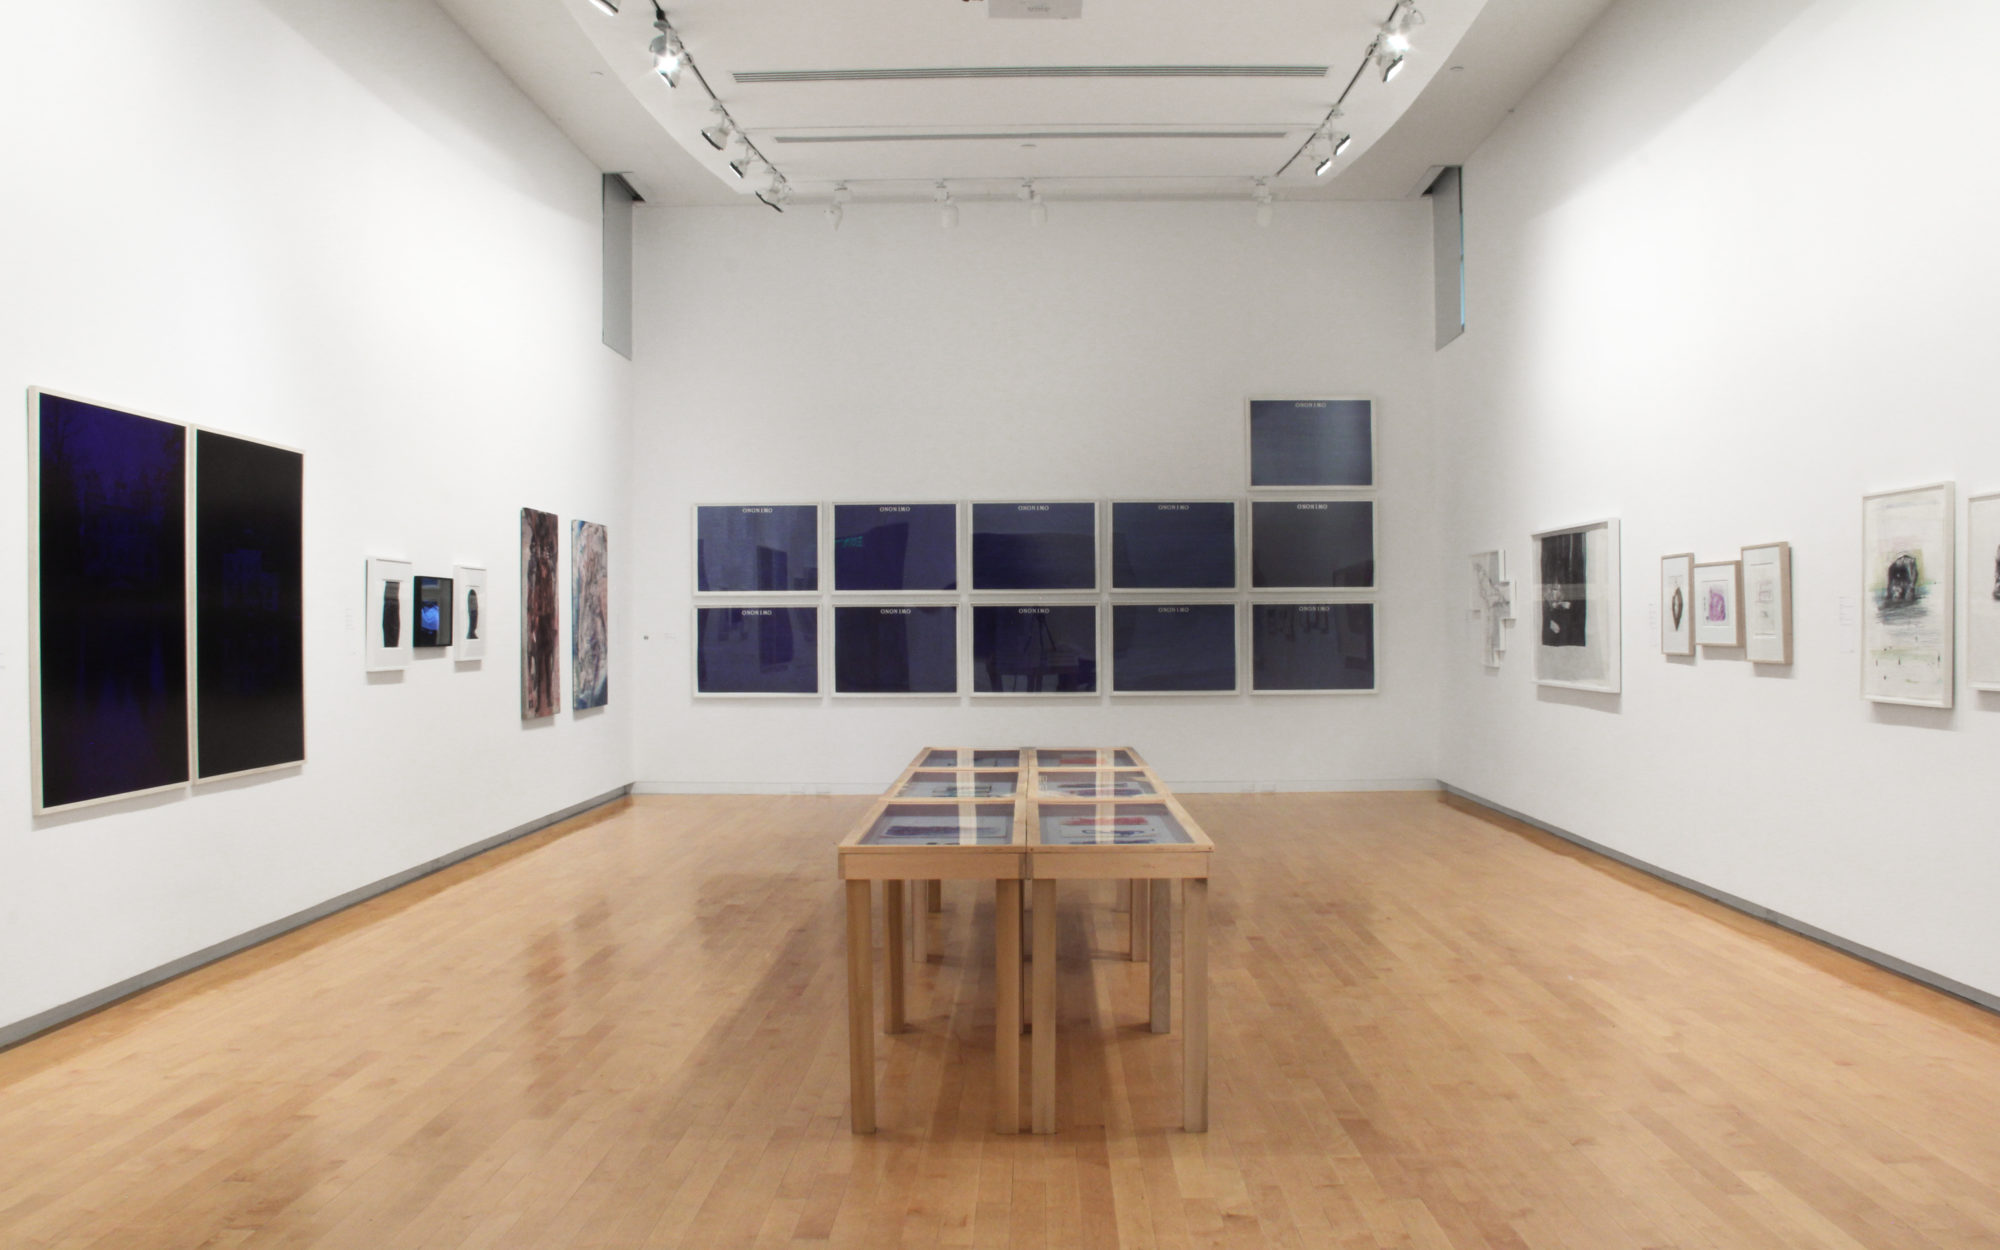 View of Ballpoint Drawing Since 1950 in The Aldrich's gallery, works hang on gallery walls and large display table sits in the middle of the room